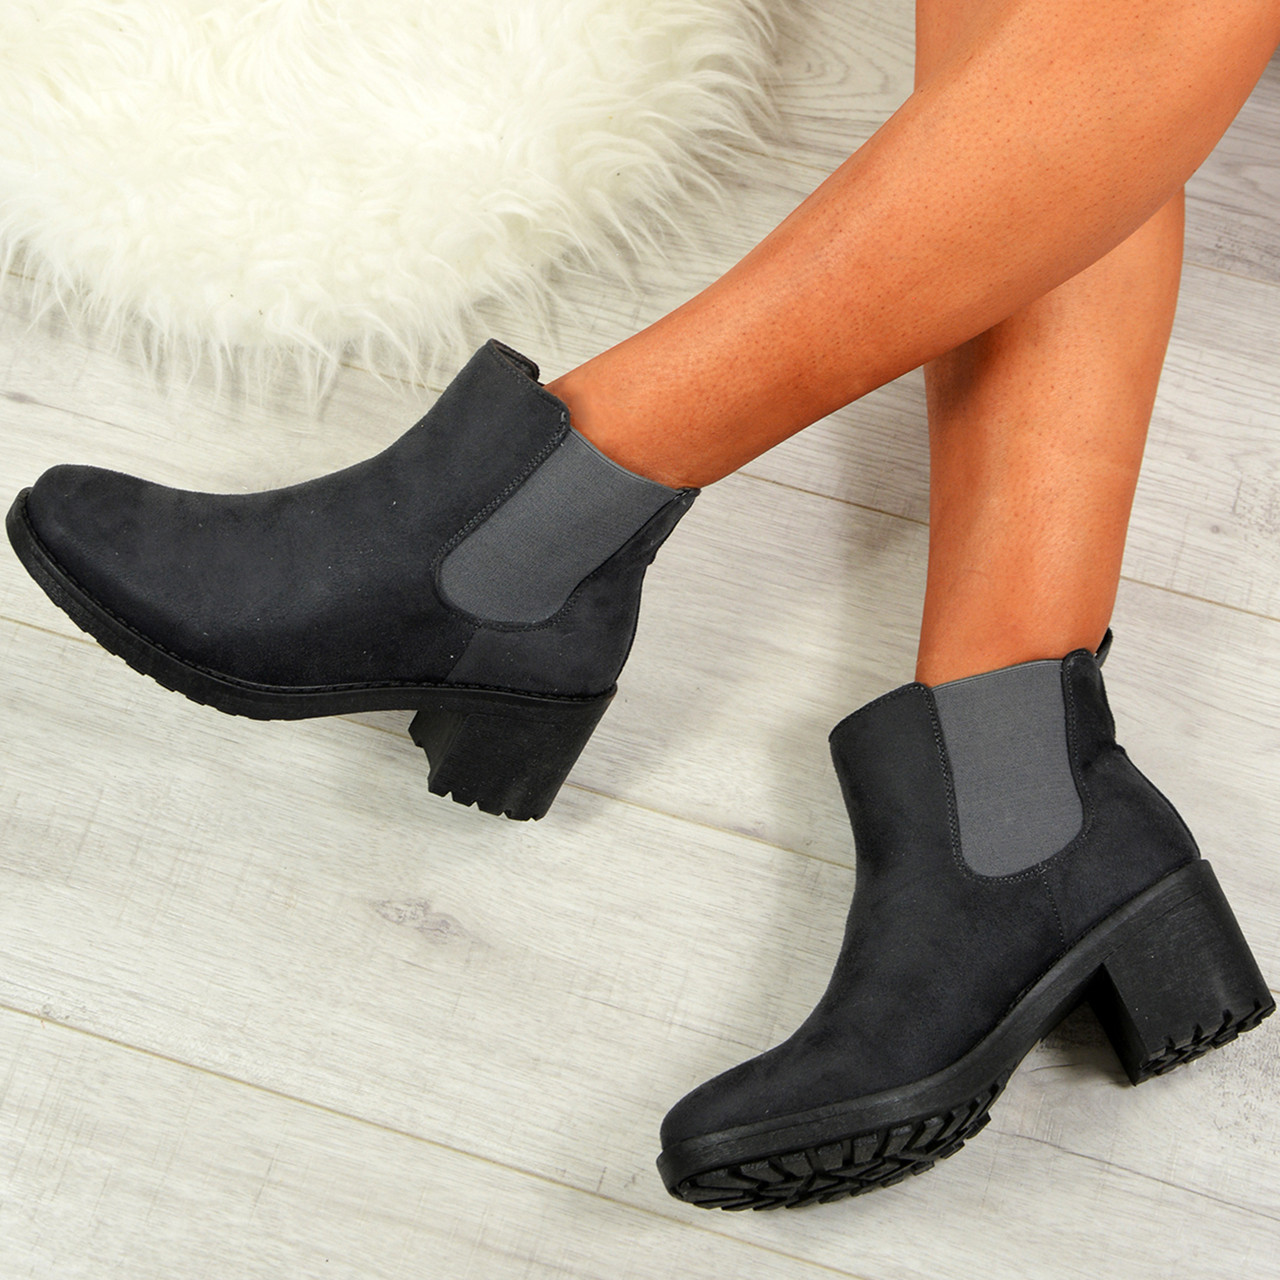 dbf396c9dc791 Ladies Womens Chelsea Ankle Boots Chunky Heel Grip Winter Shoes Size Uk